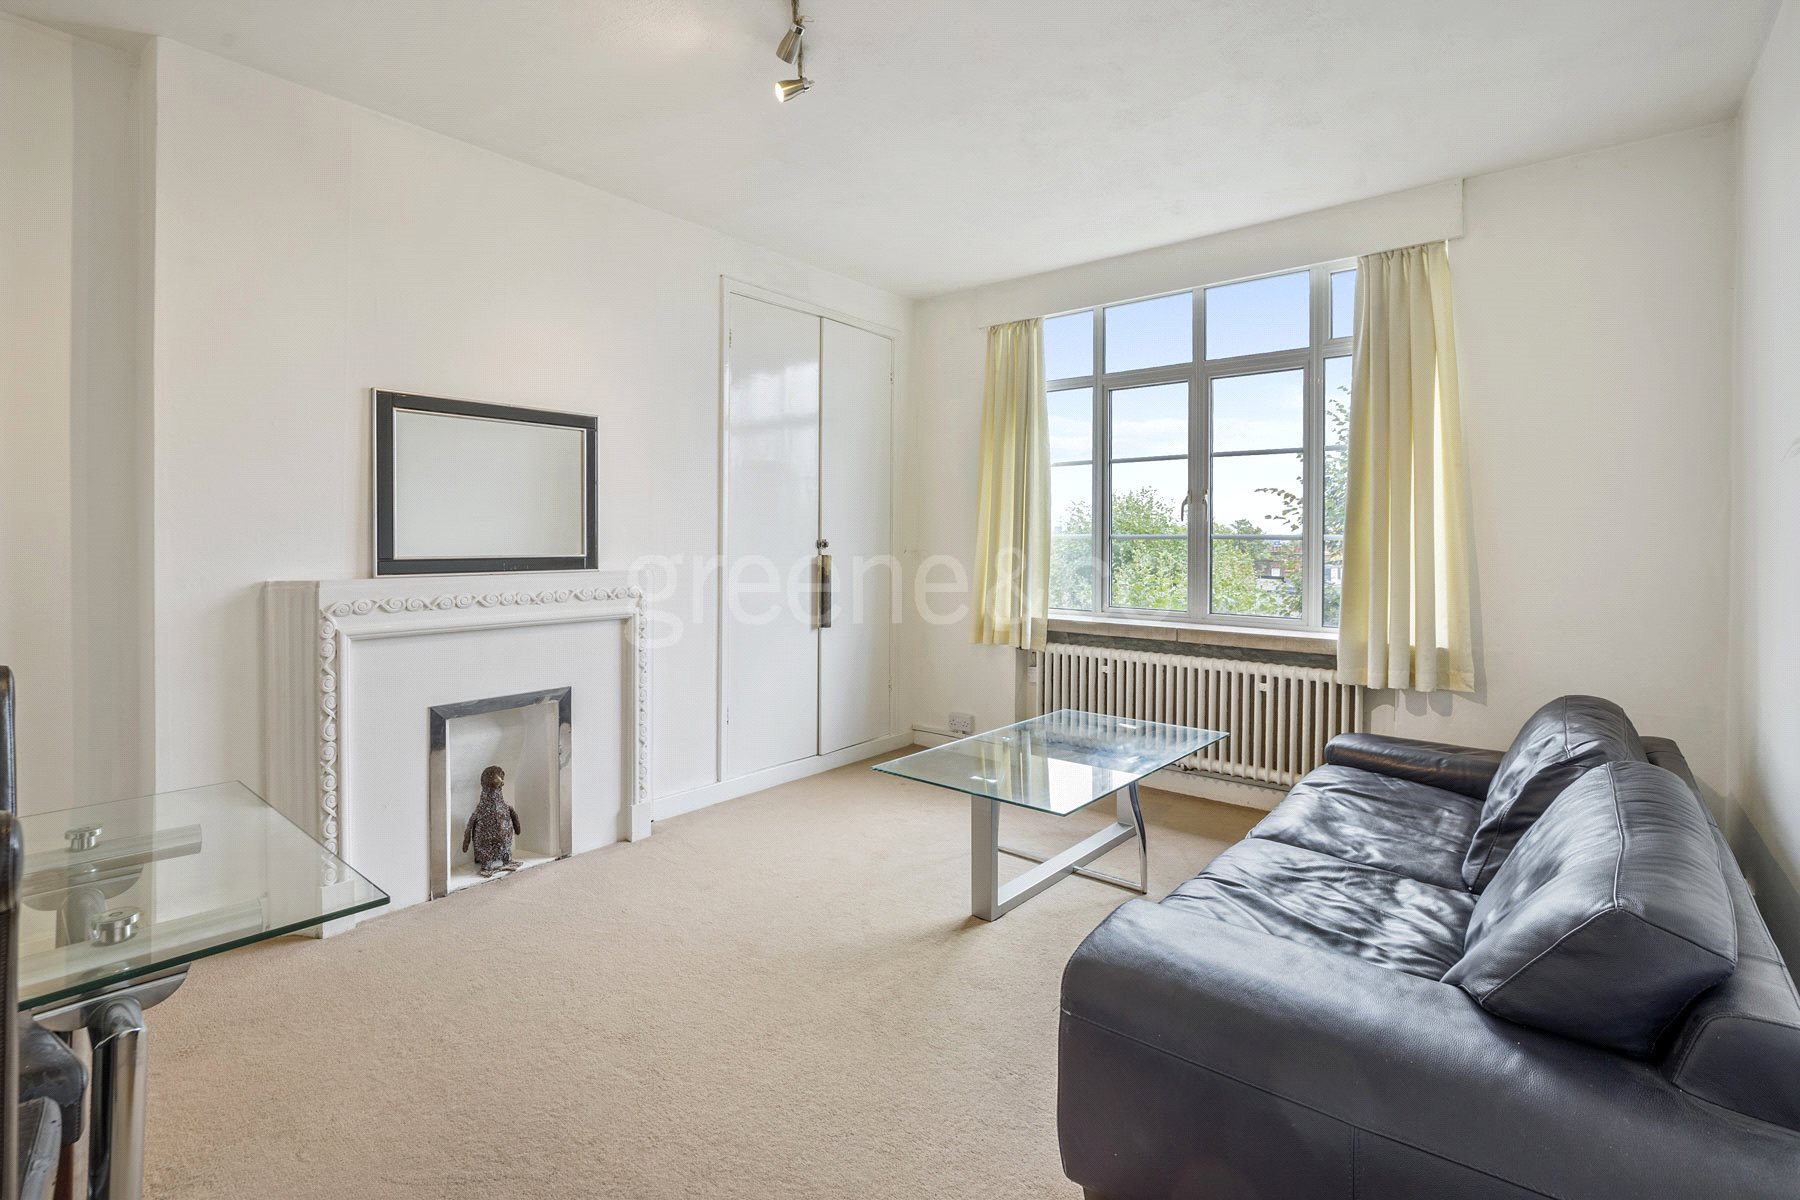 1 Bedroom Flat for sale in Tarranbrae, Kilburn, Willesden Lane, London, NW6